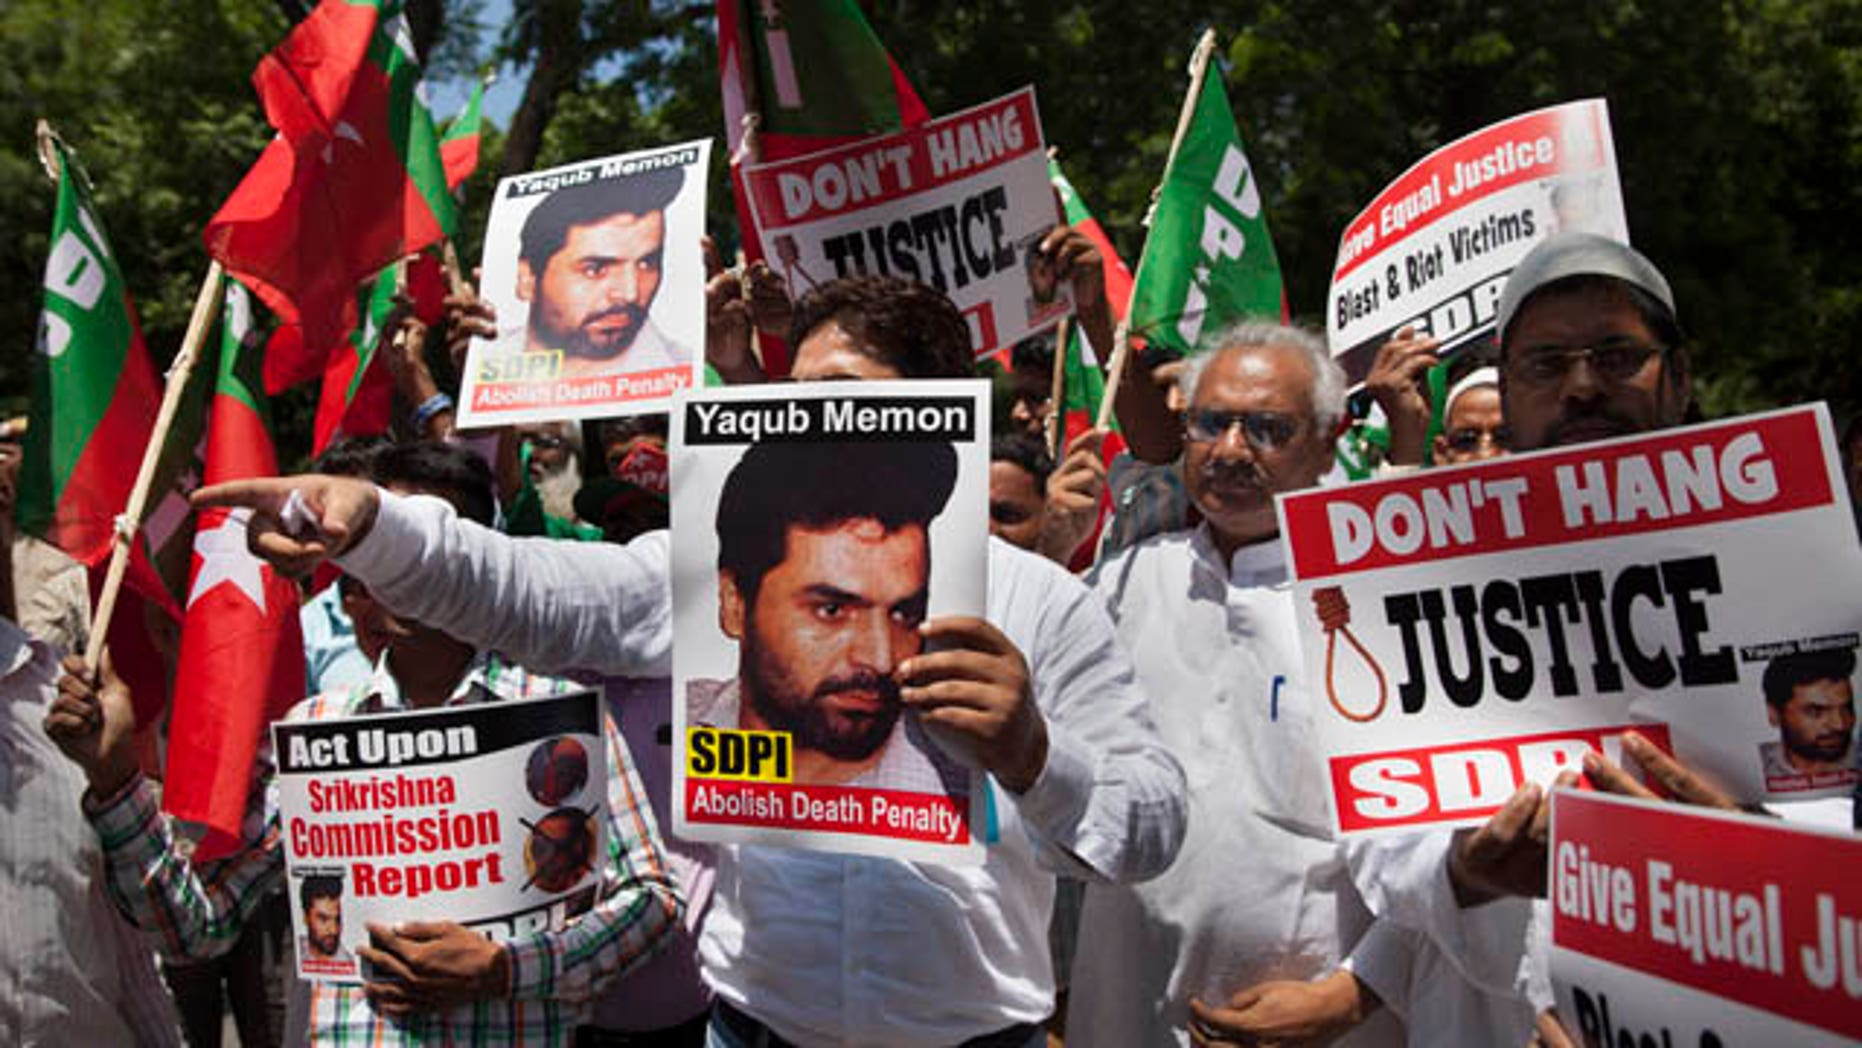 July 27, 2015: Activists of the Social Democratic Party of India carry placards with portraits of Yakub Abdul Razak Memon, convicted in the 1993 Mumbai bombings, during a protest against his death sentence outside Maharashtra House in New Delhi. (AP Photo/Tsering Topgyal)